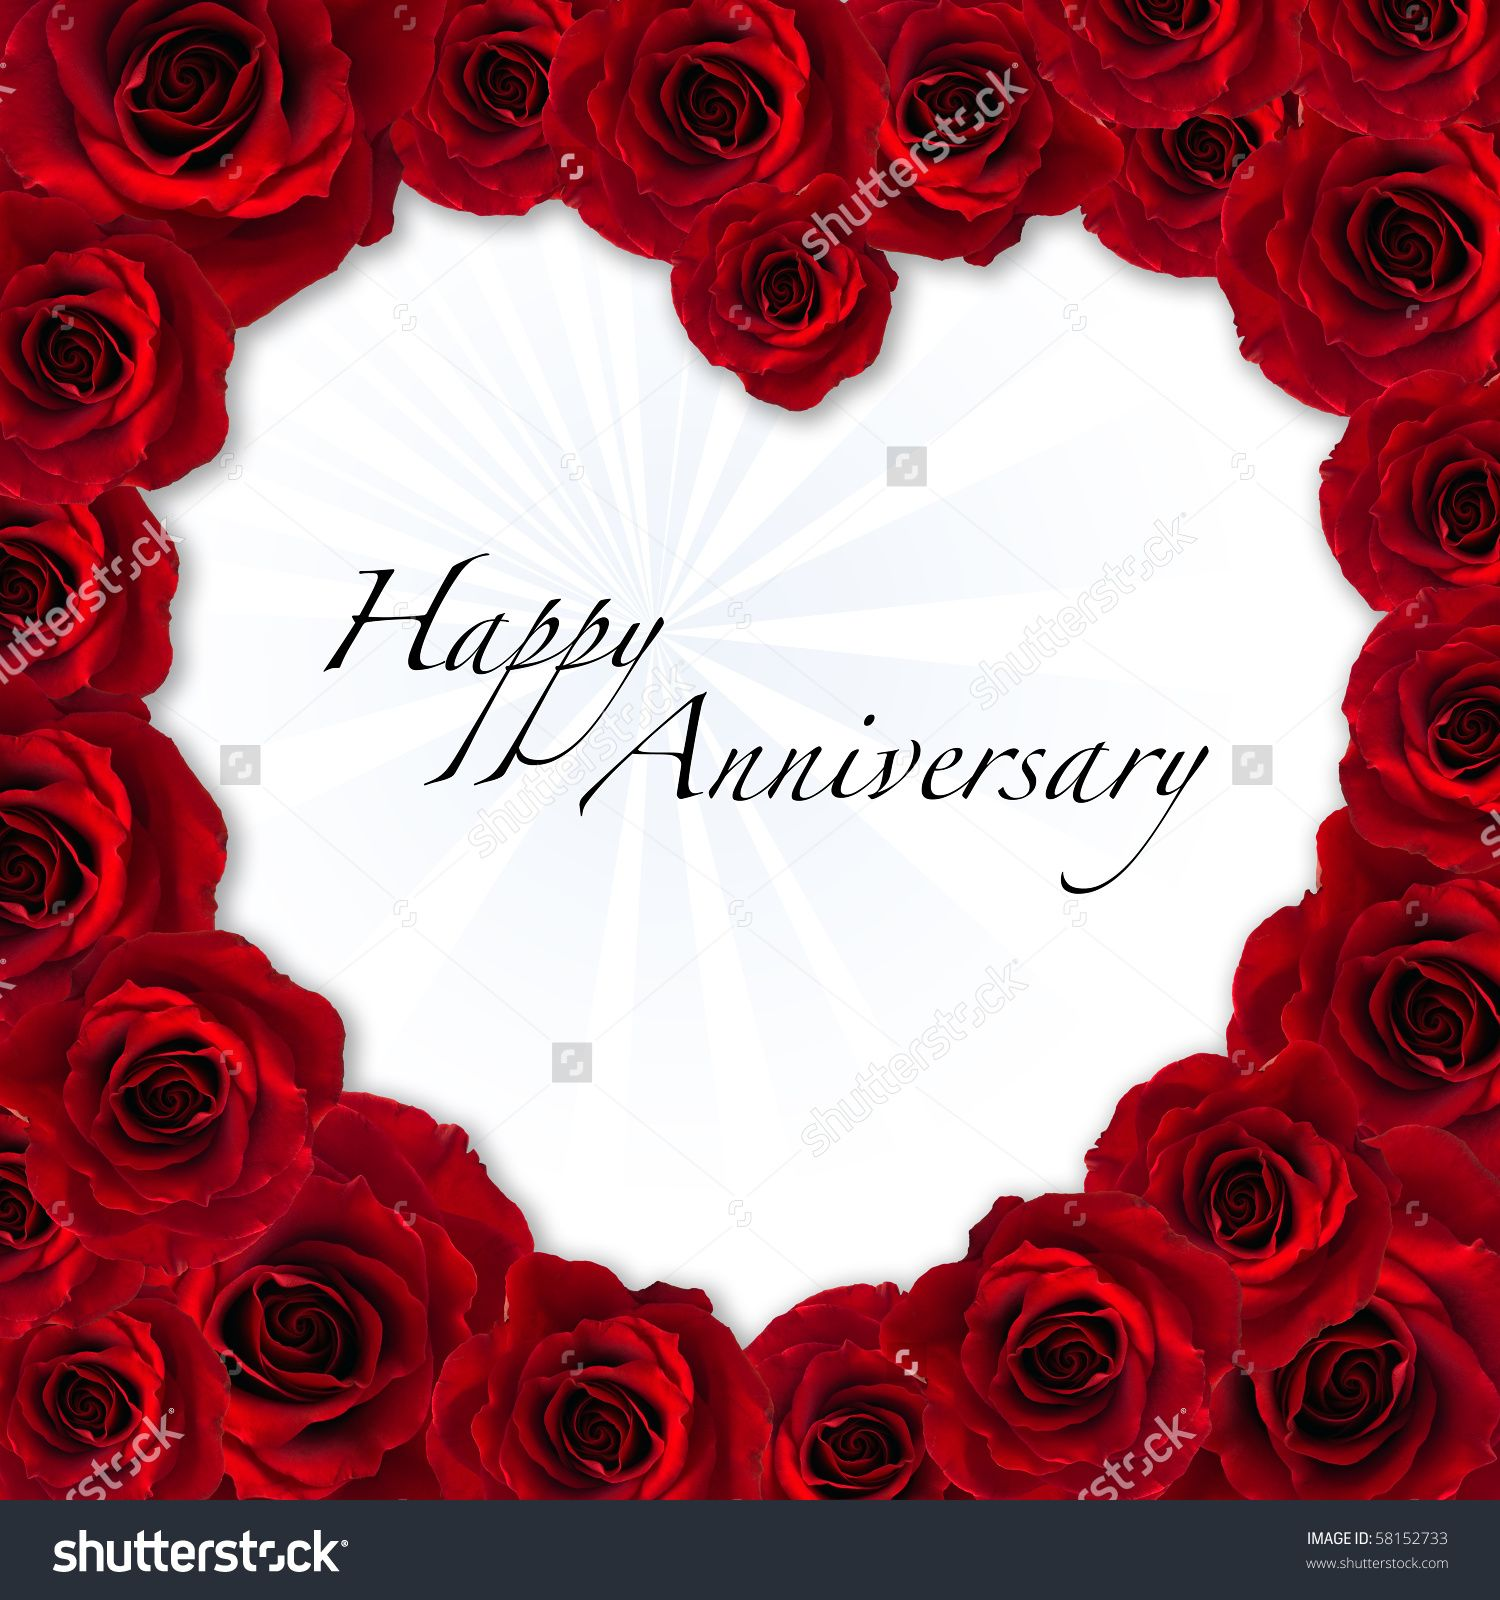 stock-photo-happy-anniversary-card-58152733.jpg (1500×1600) | Words ...